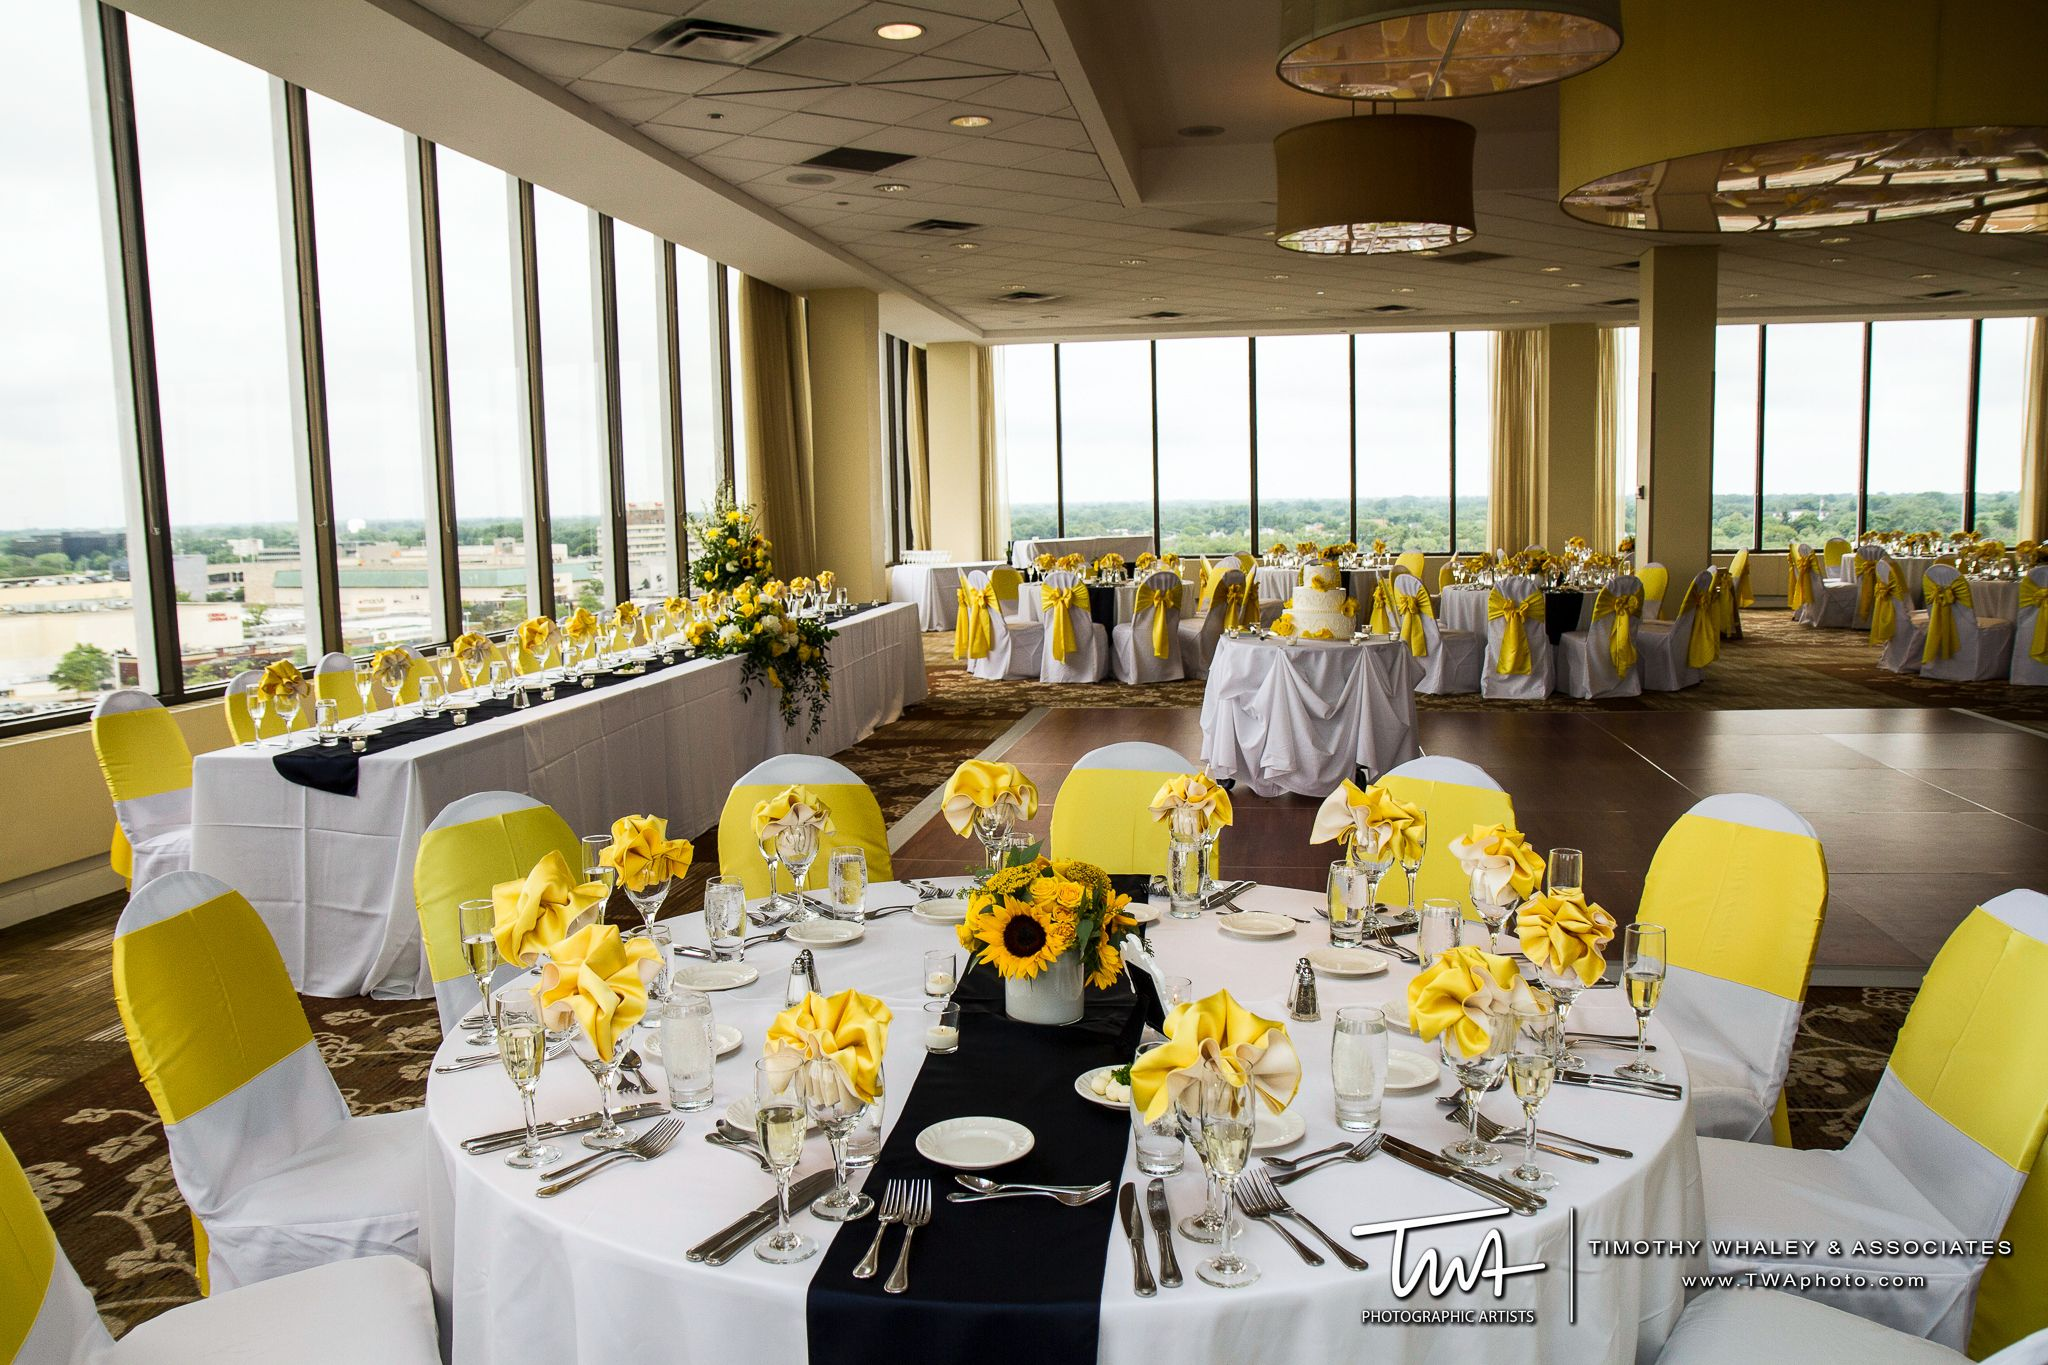 Columns ivory fabric uplighting wedding ceremony downtown double tree - Twa Weddings At Doubletree Chicago North Shore Conference Center In Skokie Il Click The